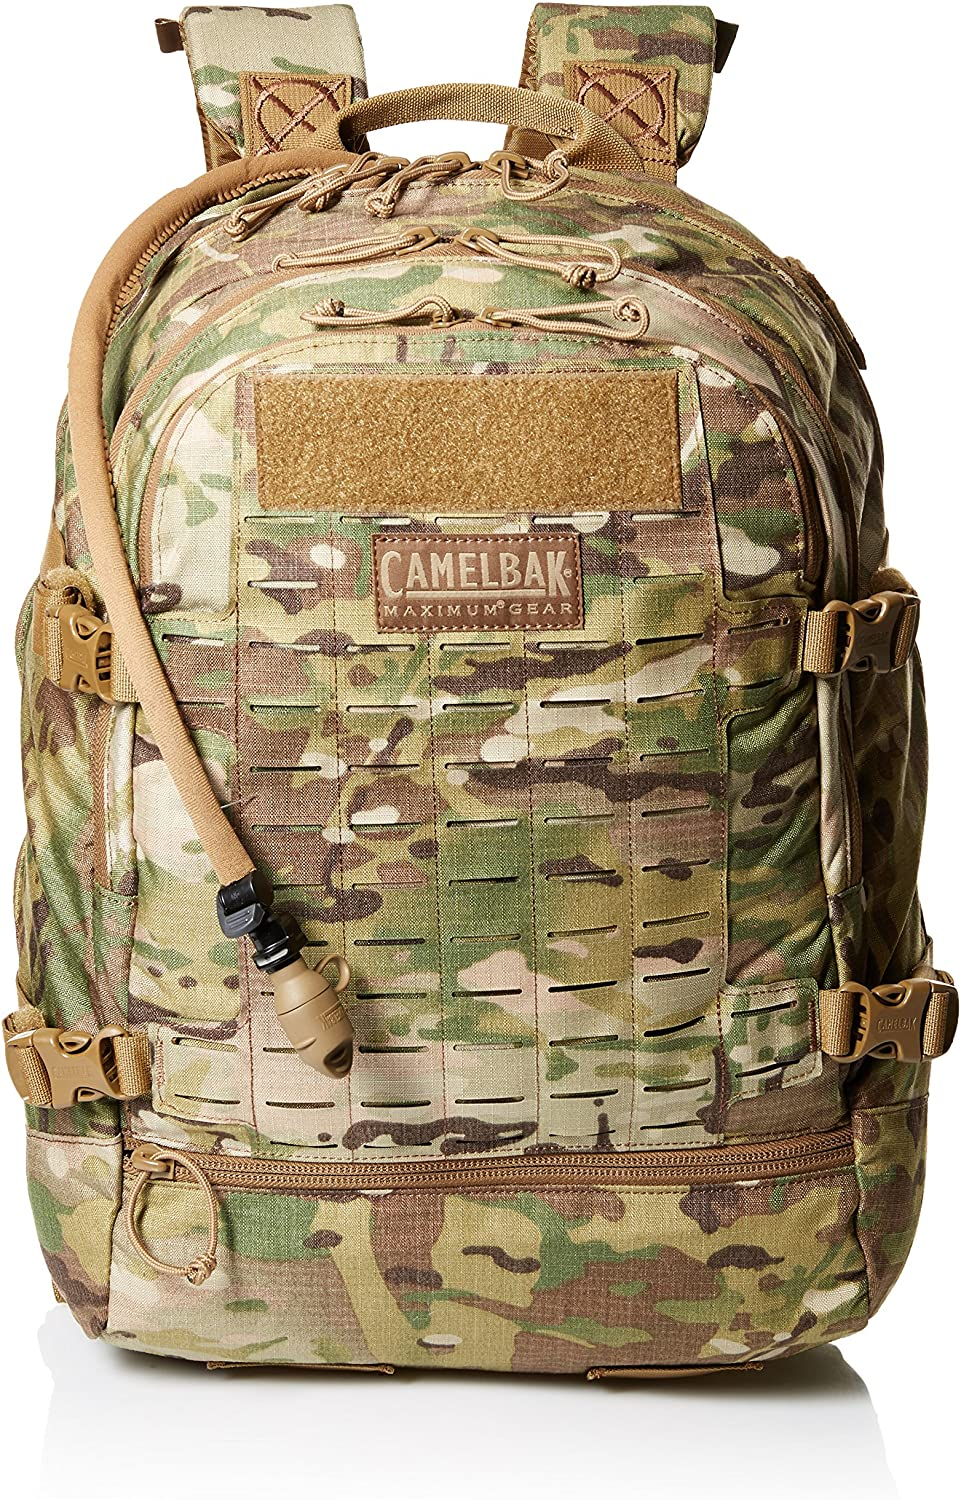 CamelBak Skirmish Mil-Tac Los Angeles Mall Max 80% OFF 100oz Backpack Hydration